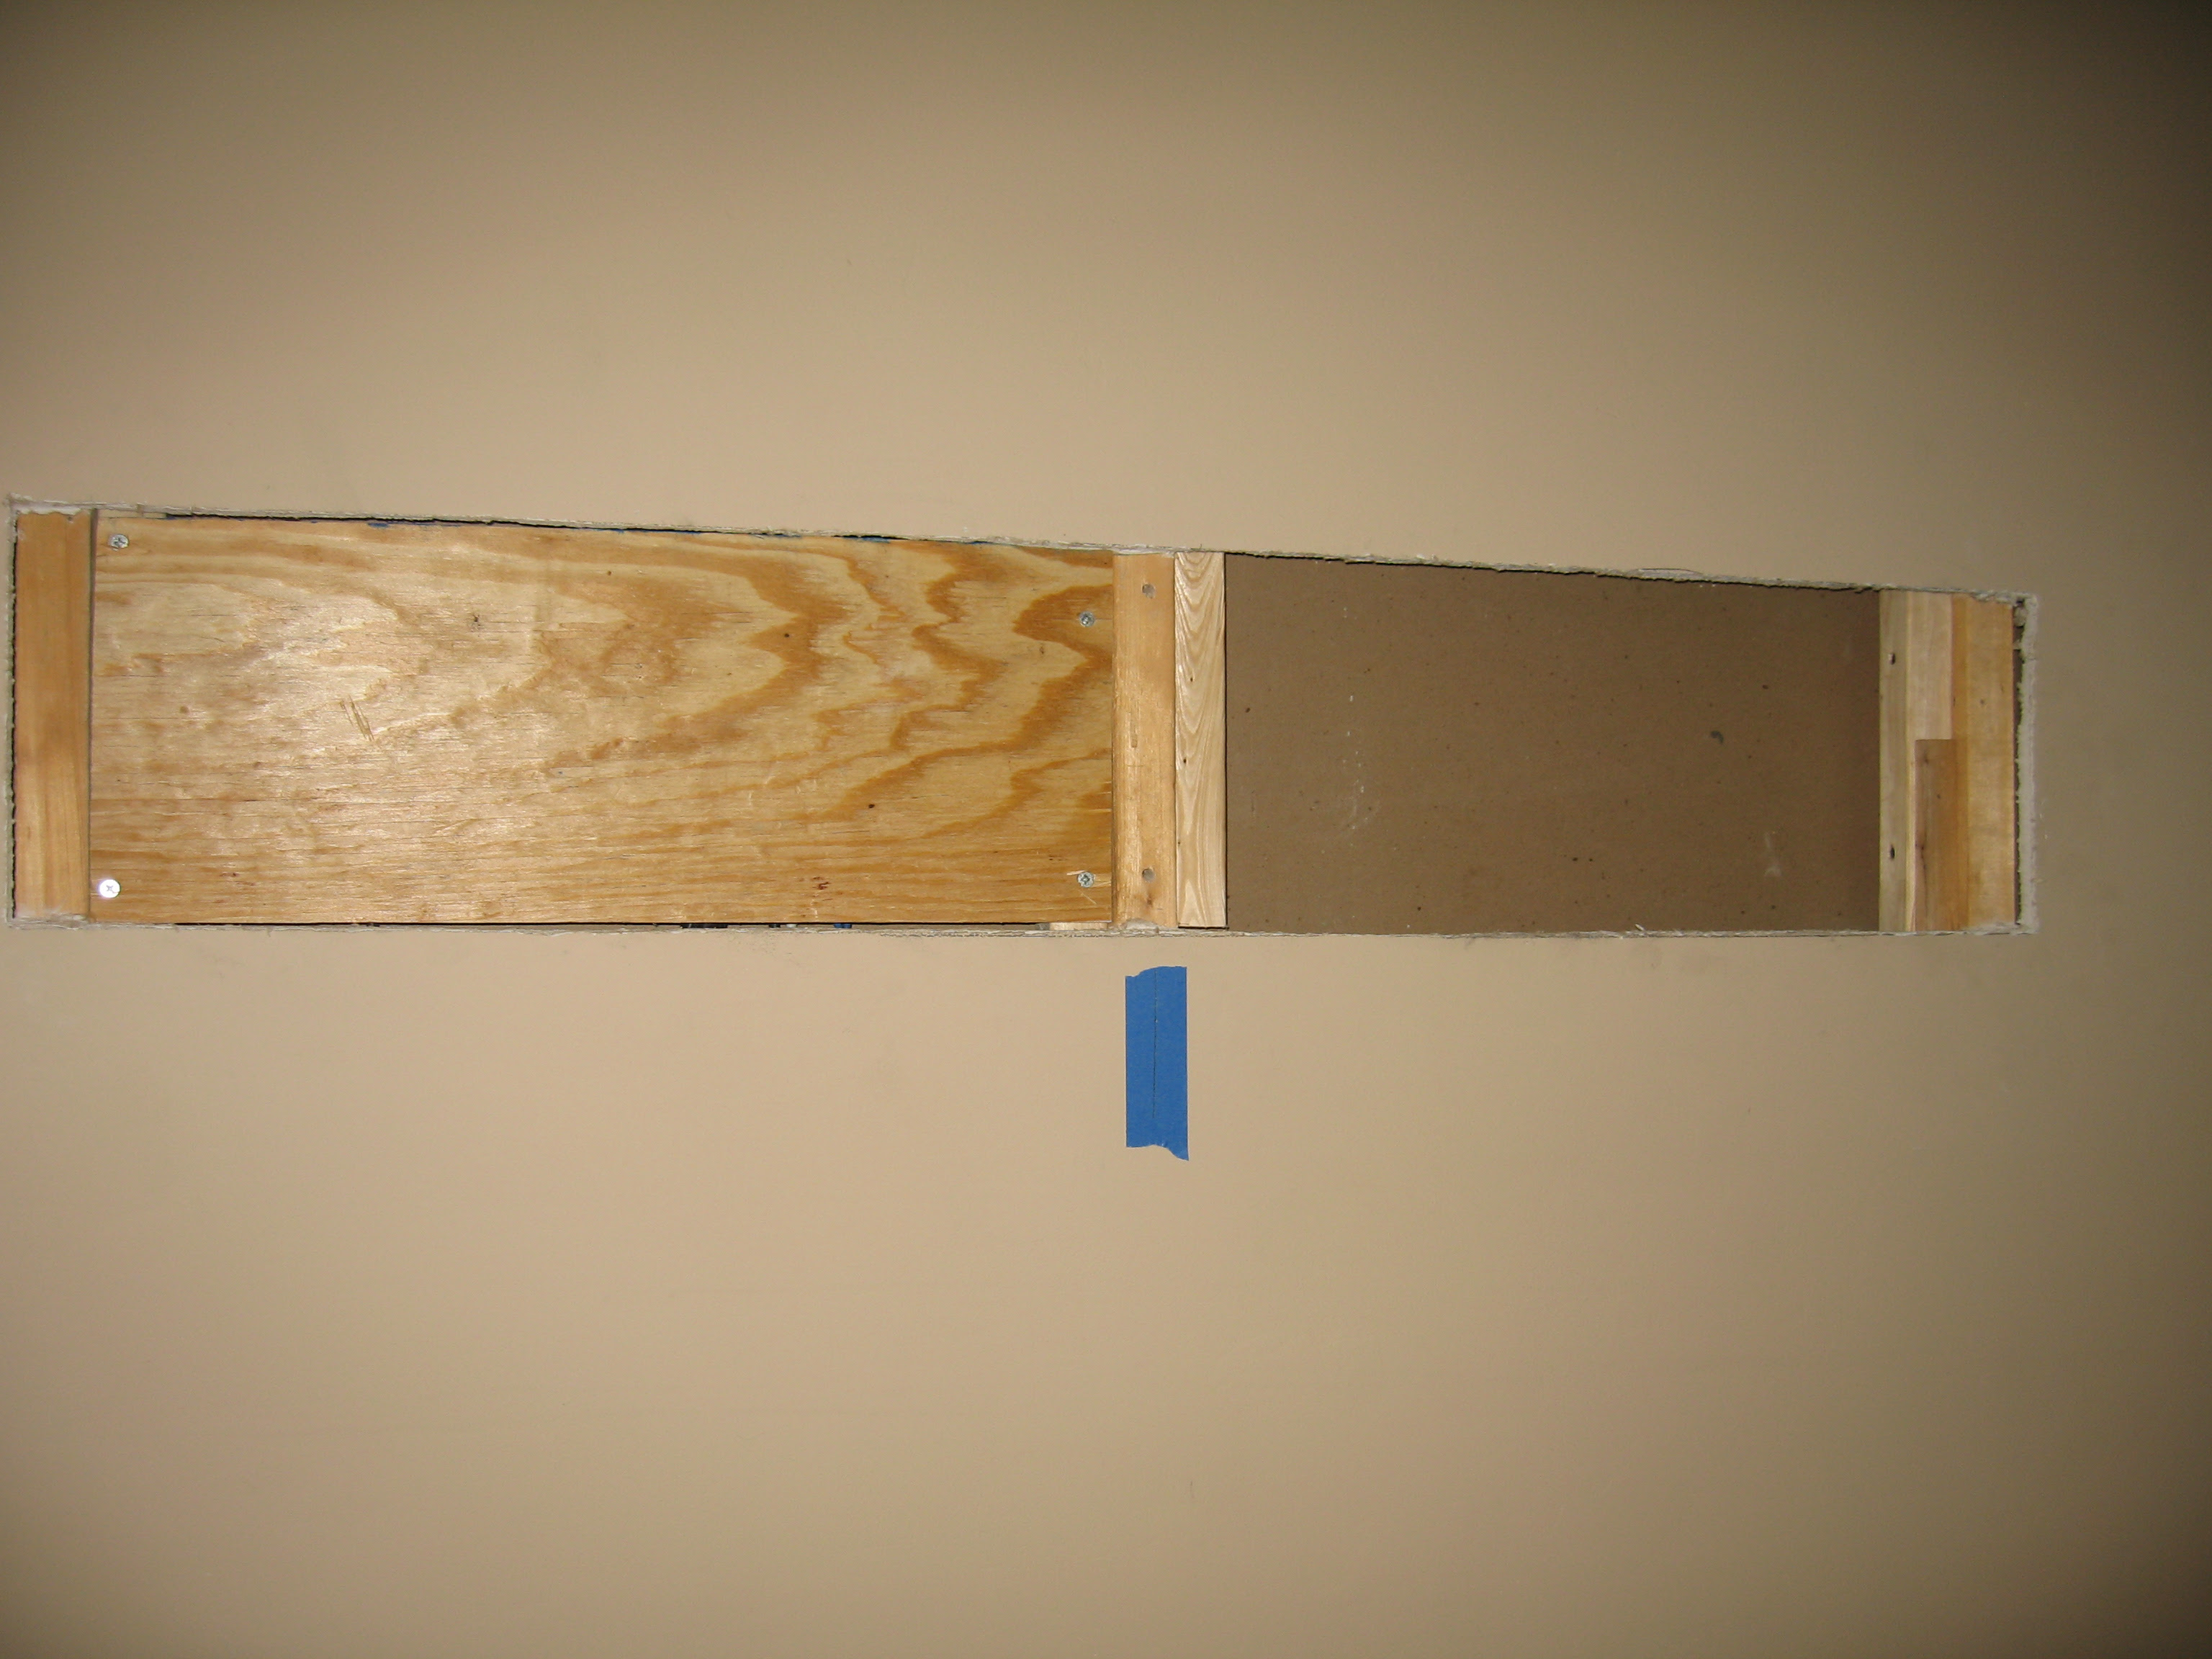 Hanging Cabinets On Drywall No Studs Image Cabinets And Shower